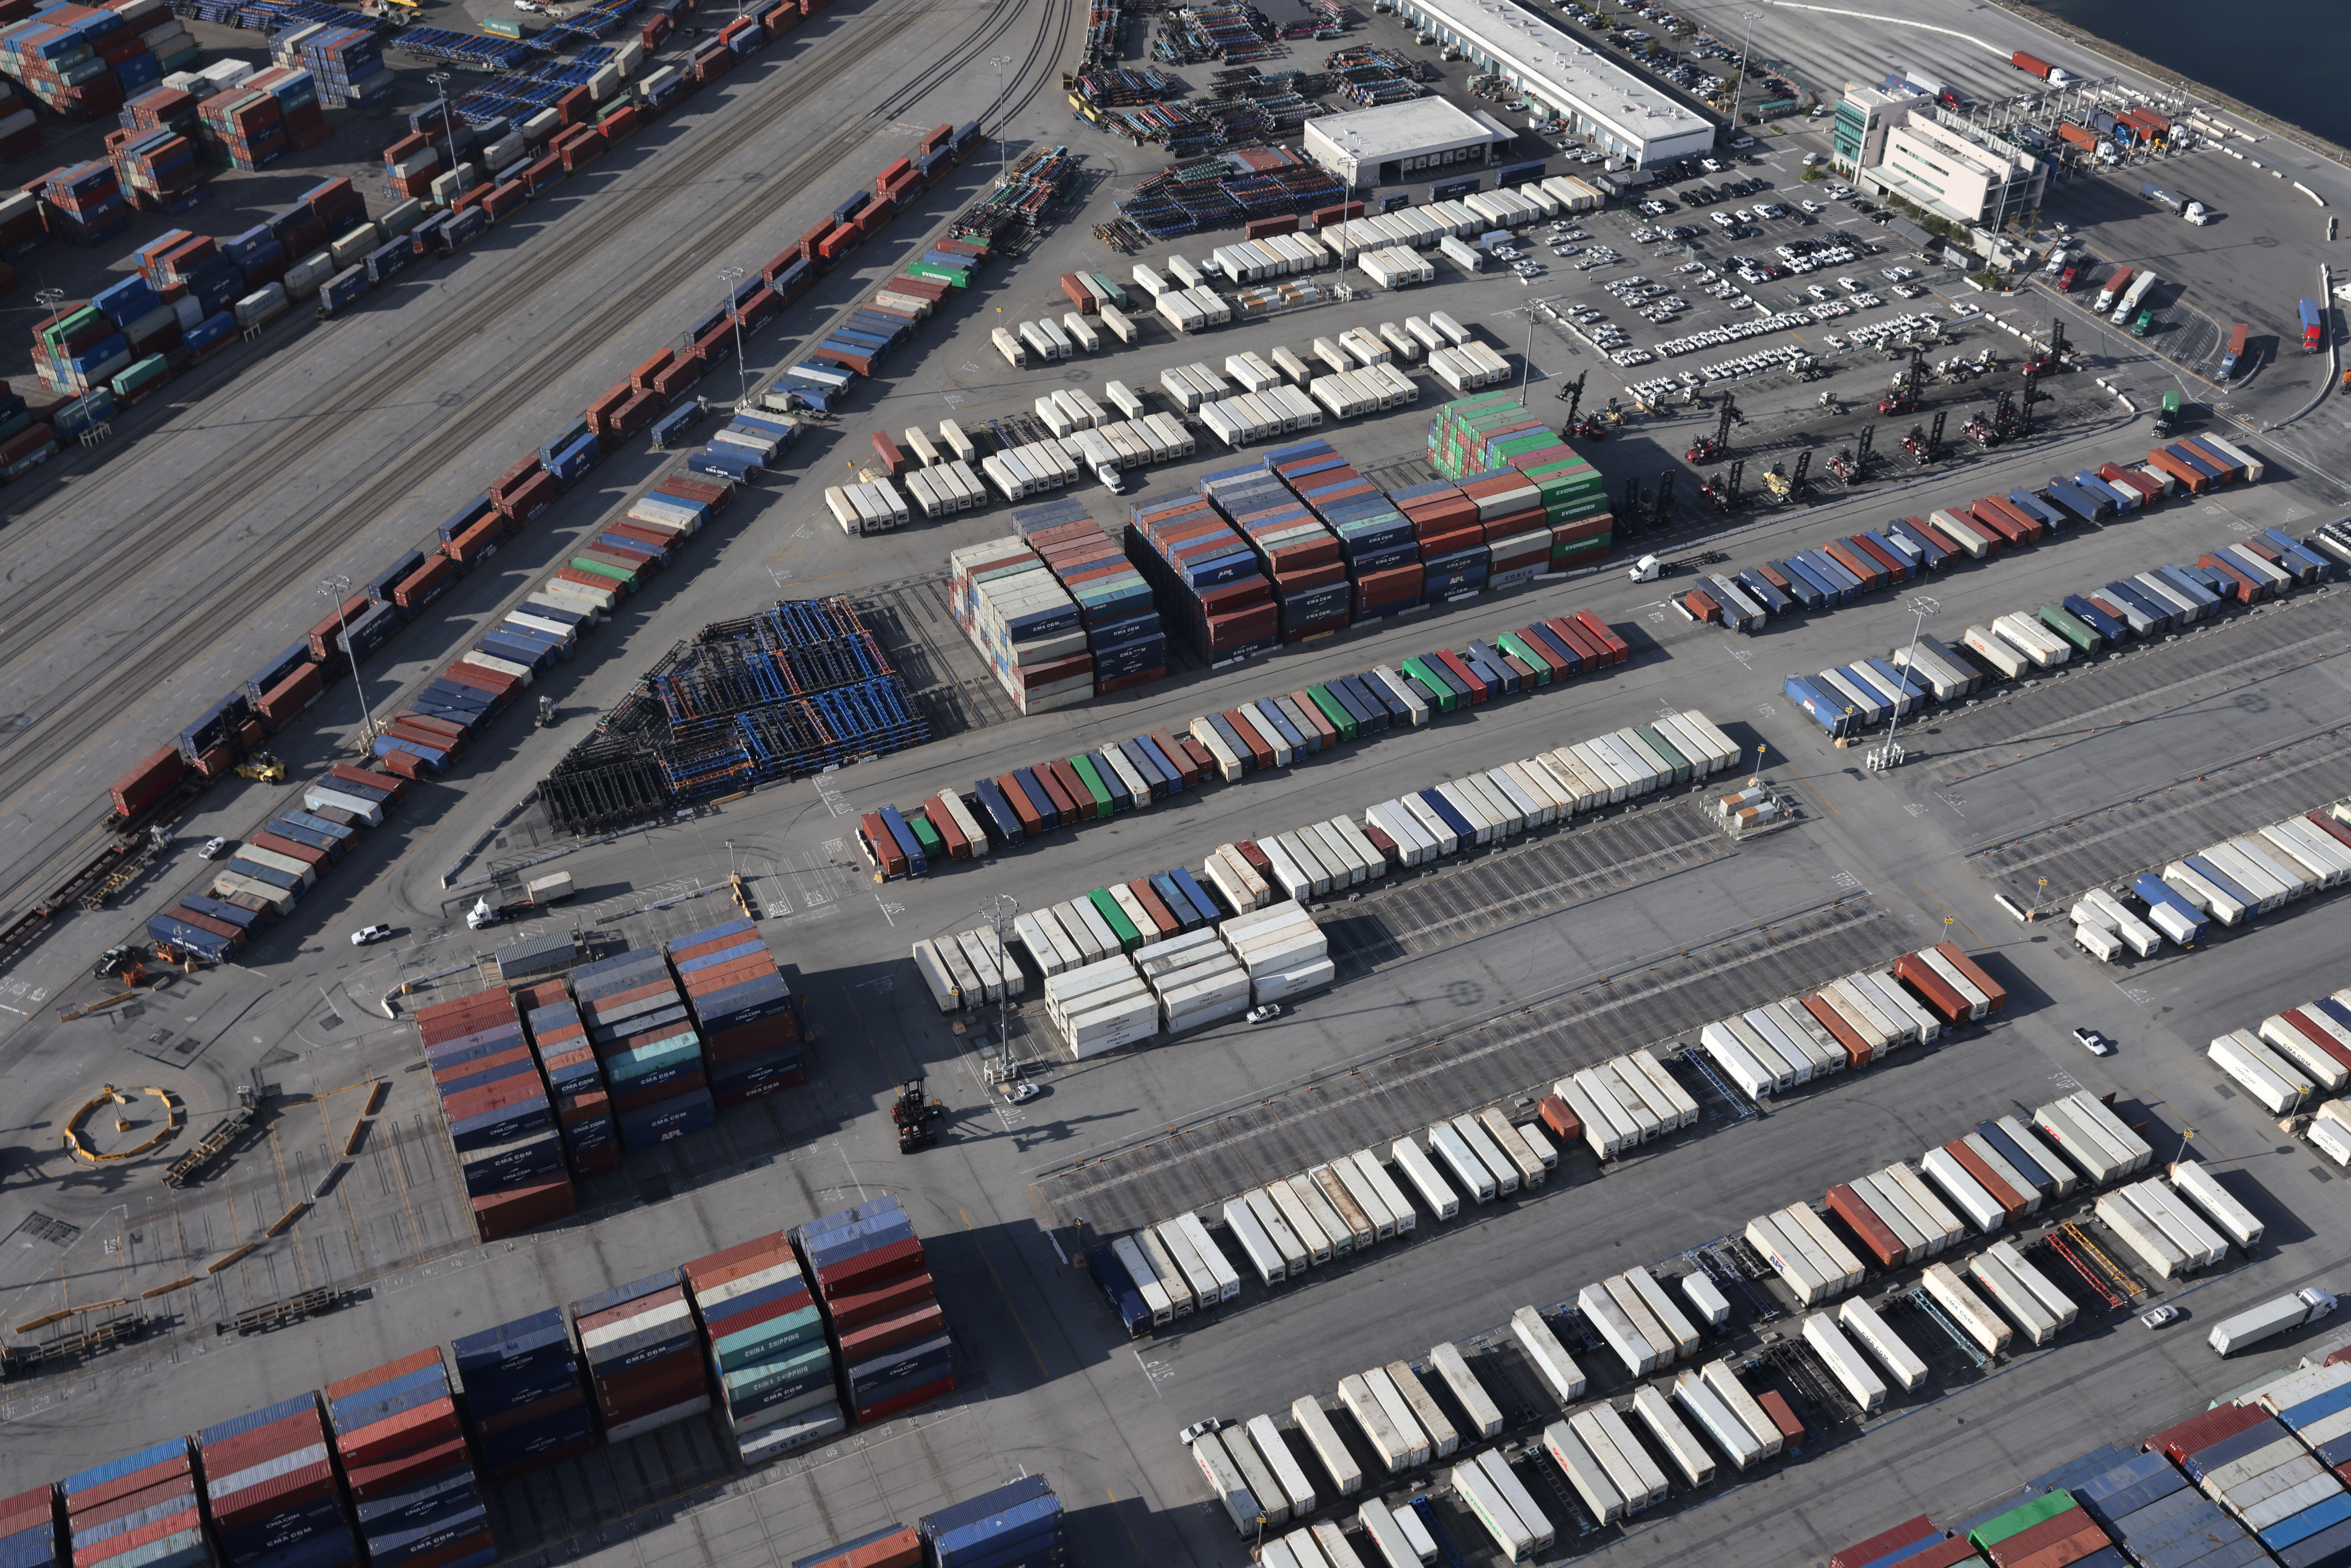 Shipping containers sit on the dock at a container terminal at the Port of Long Beach-Port of Los Angeles complex, amid the coronavirus disease (COVID-19) pandemic, in Los Angeles, California, U.S., April 7, 2021. REUTERS/Lucy Nicholson